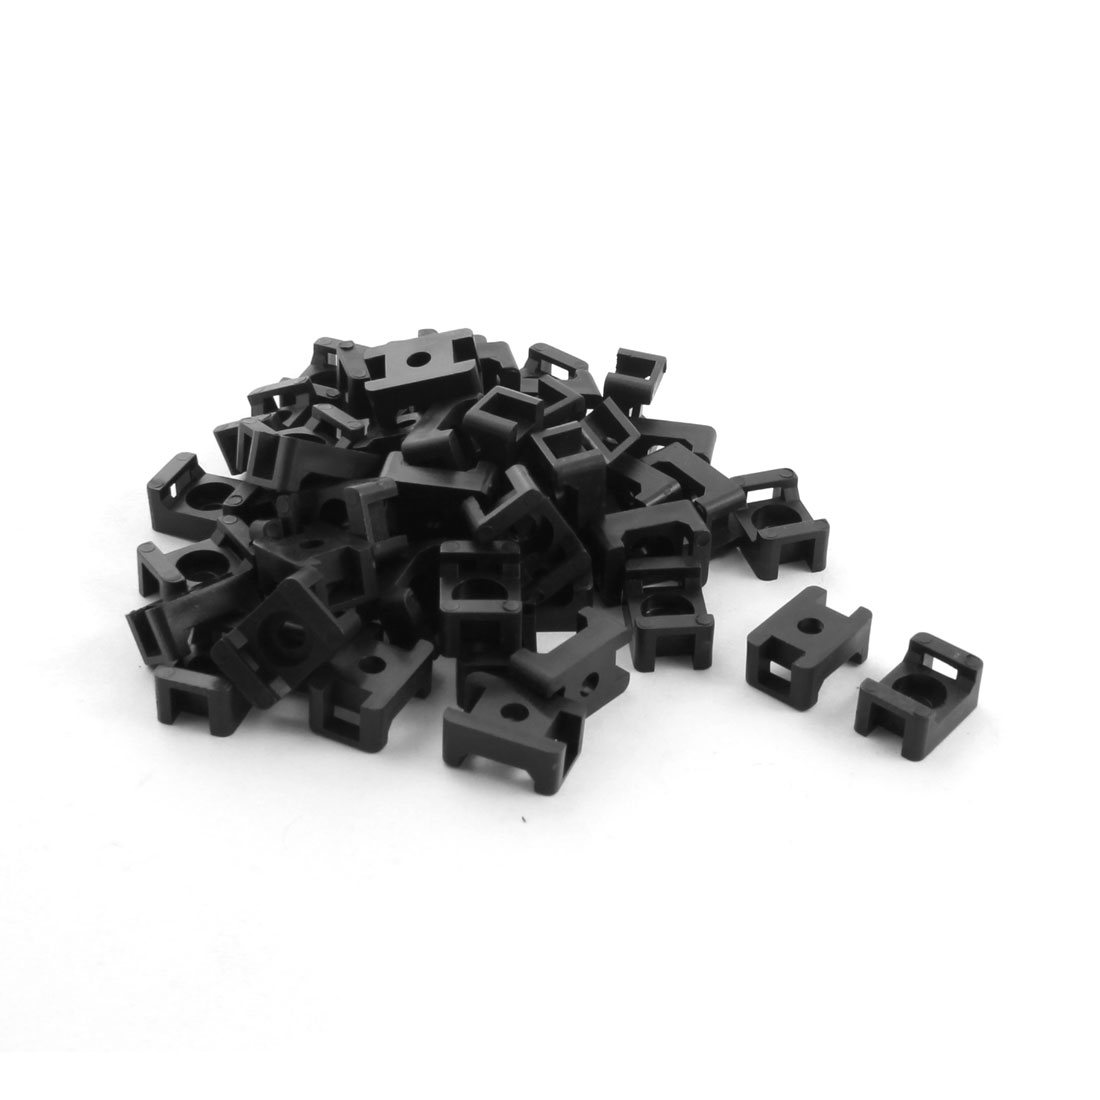 50Pcs 5mm Slot Width Wire Bundle Cable Tie Mount Saddle Base Holder Cradle